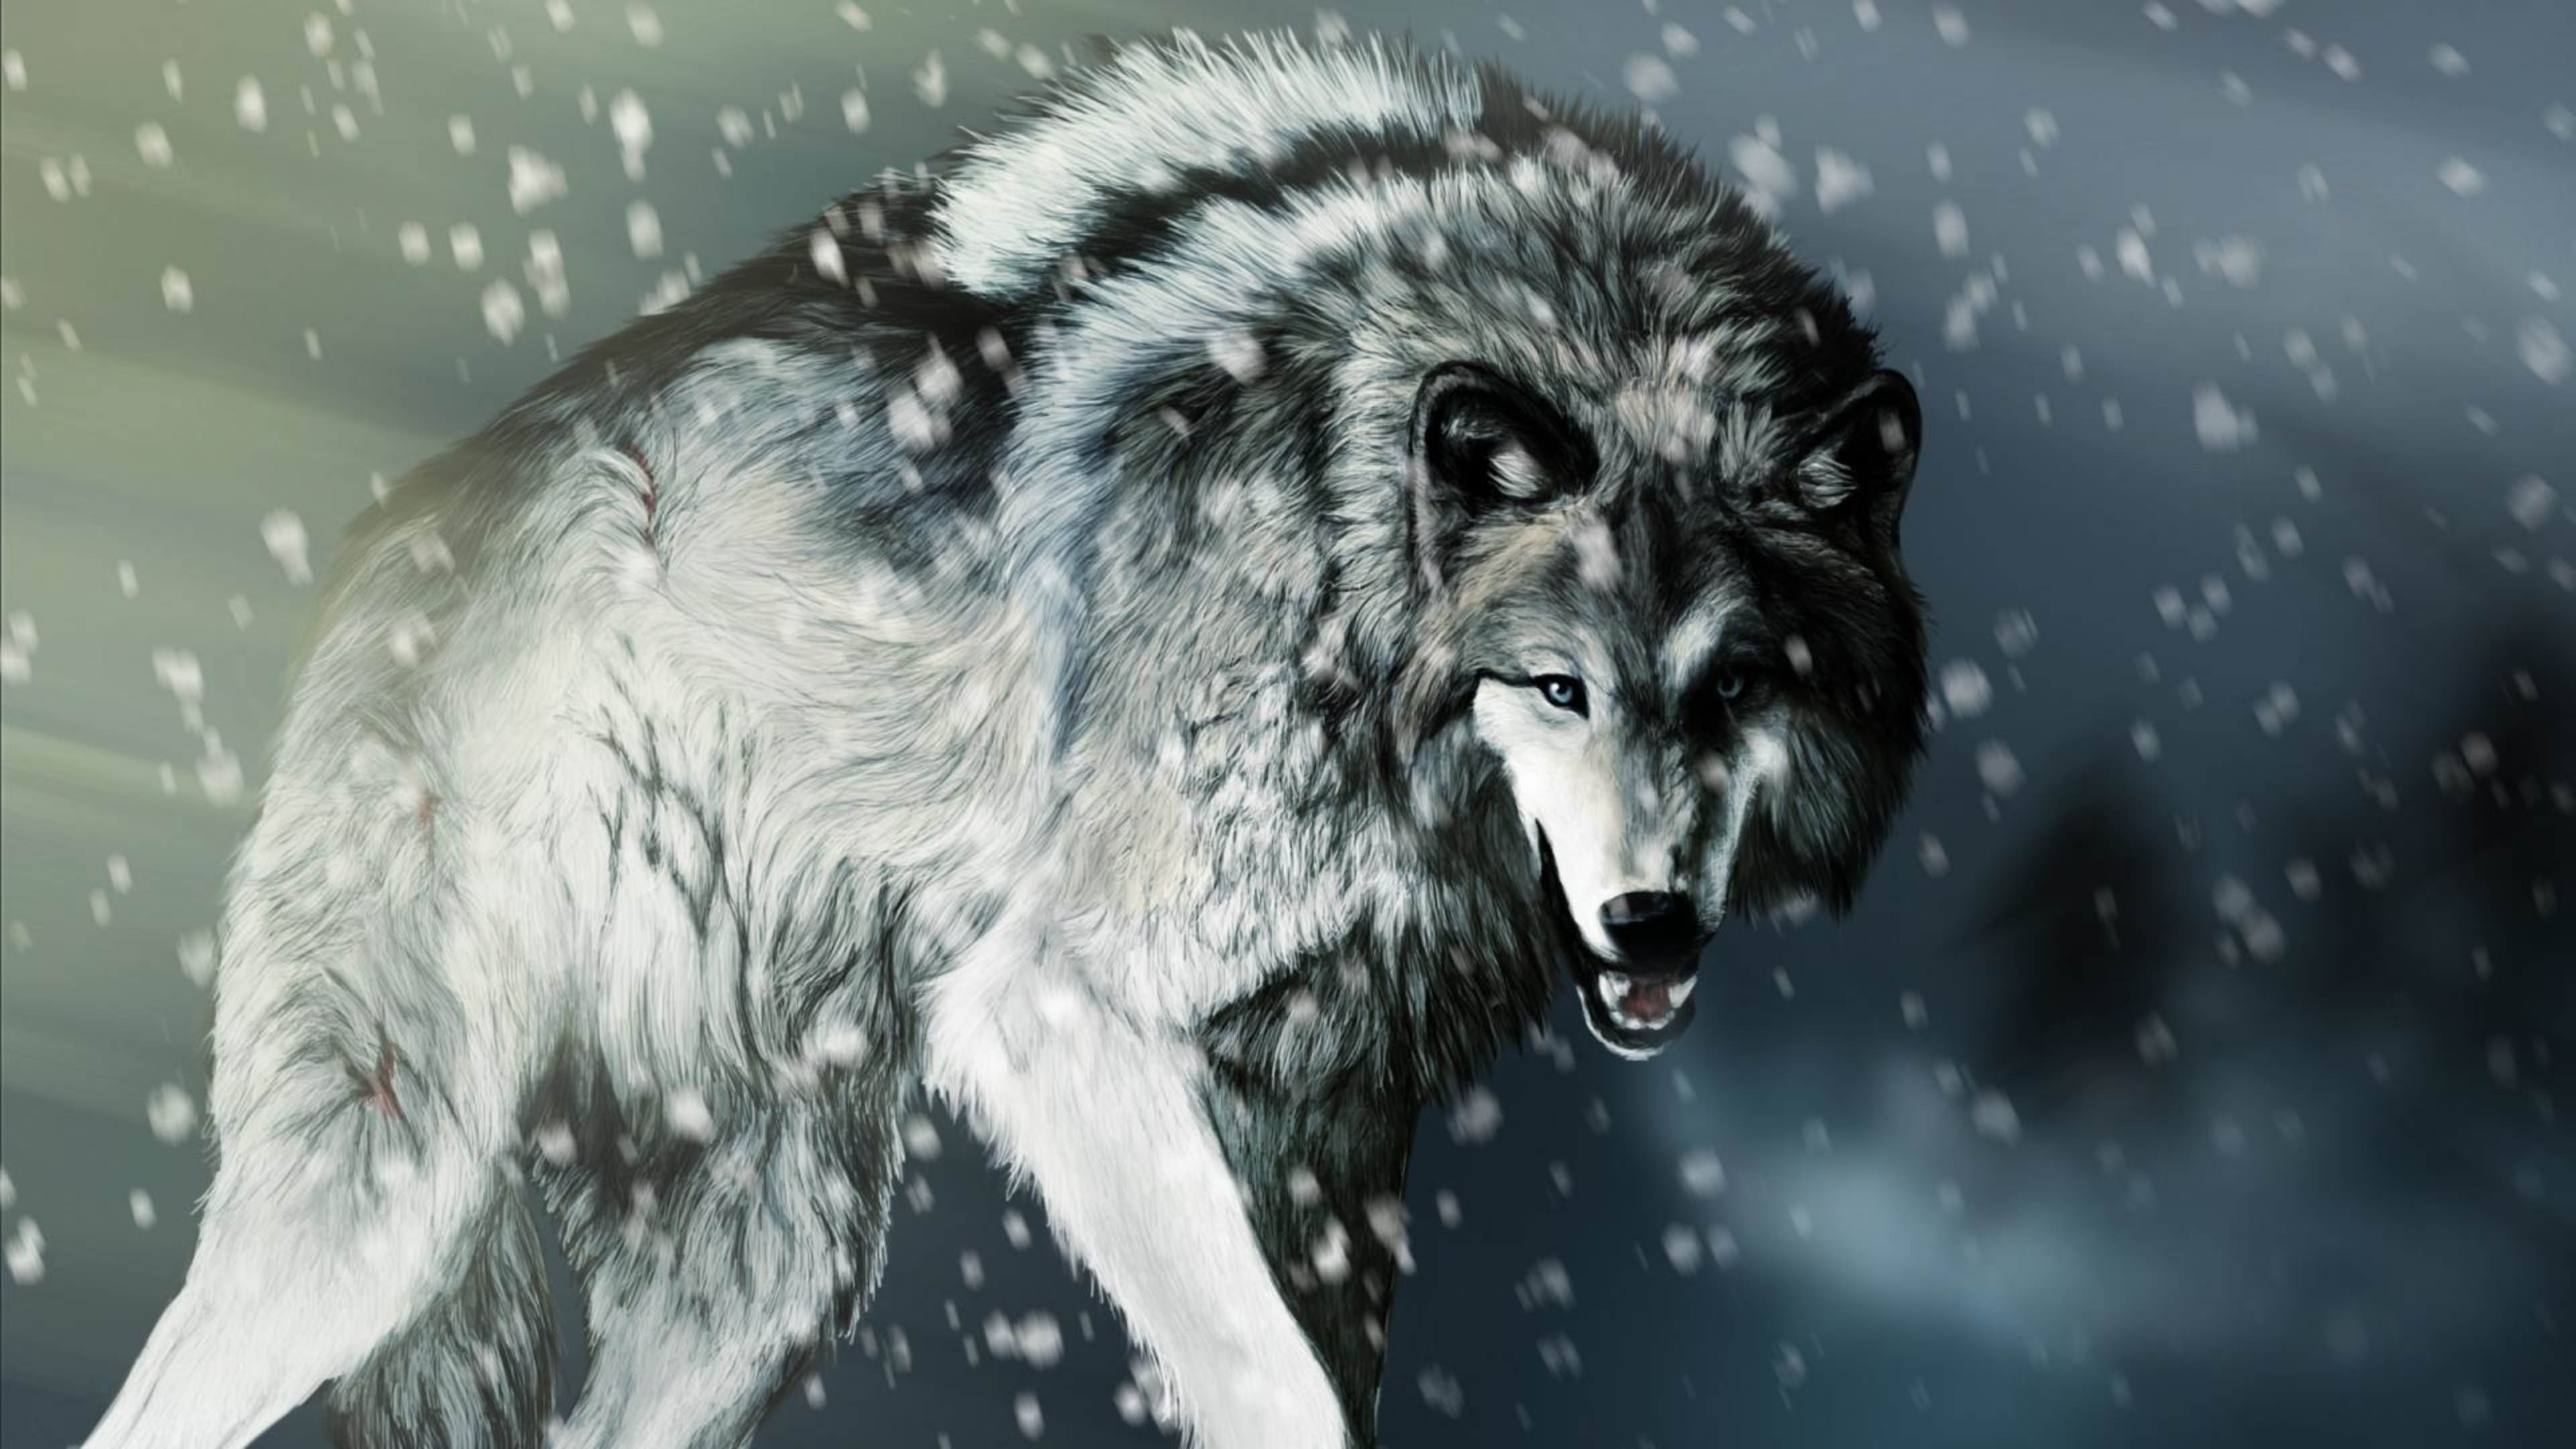 2560x1440 wolf clipart banner freeuse wolf winter wallpaper banner freeuse